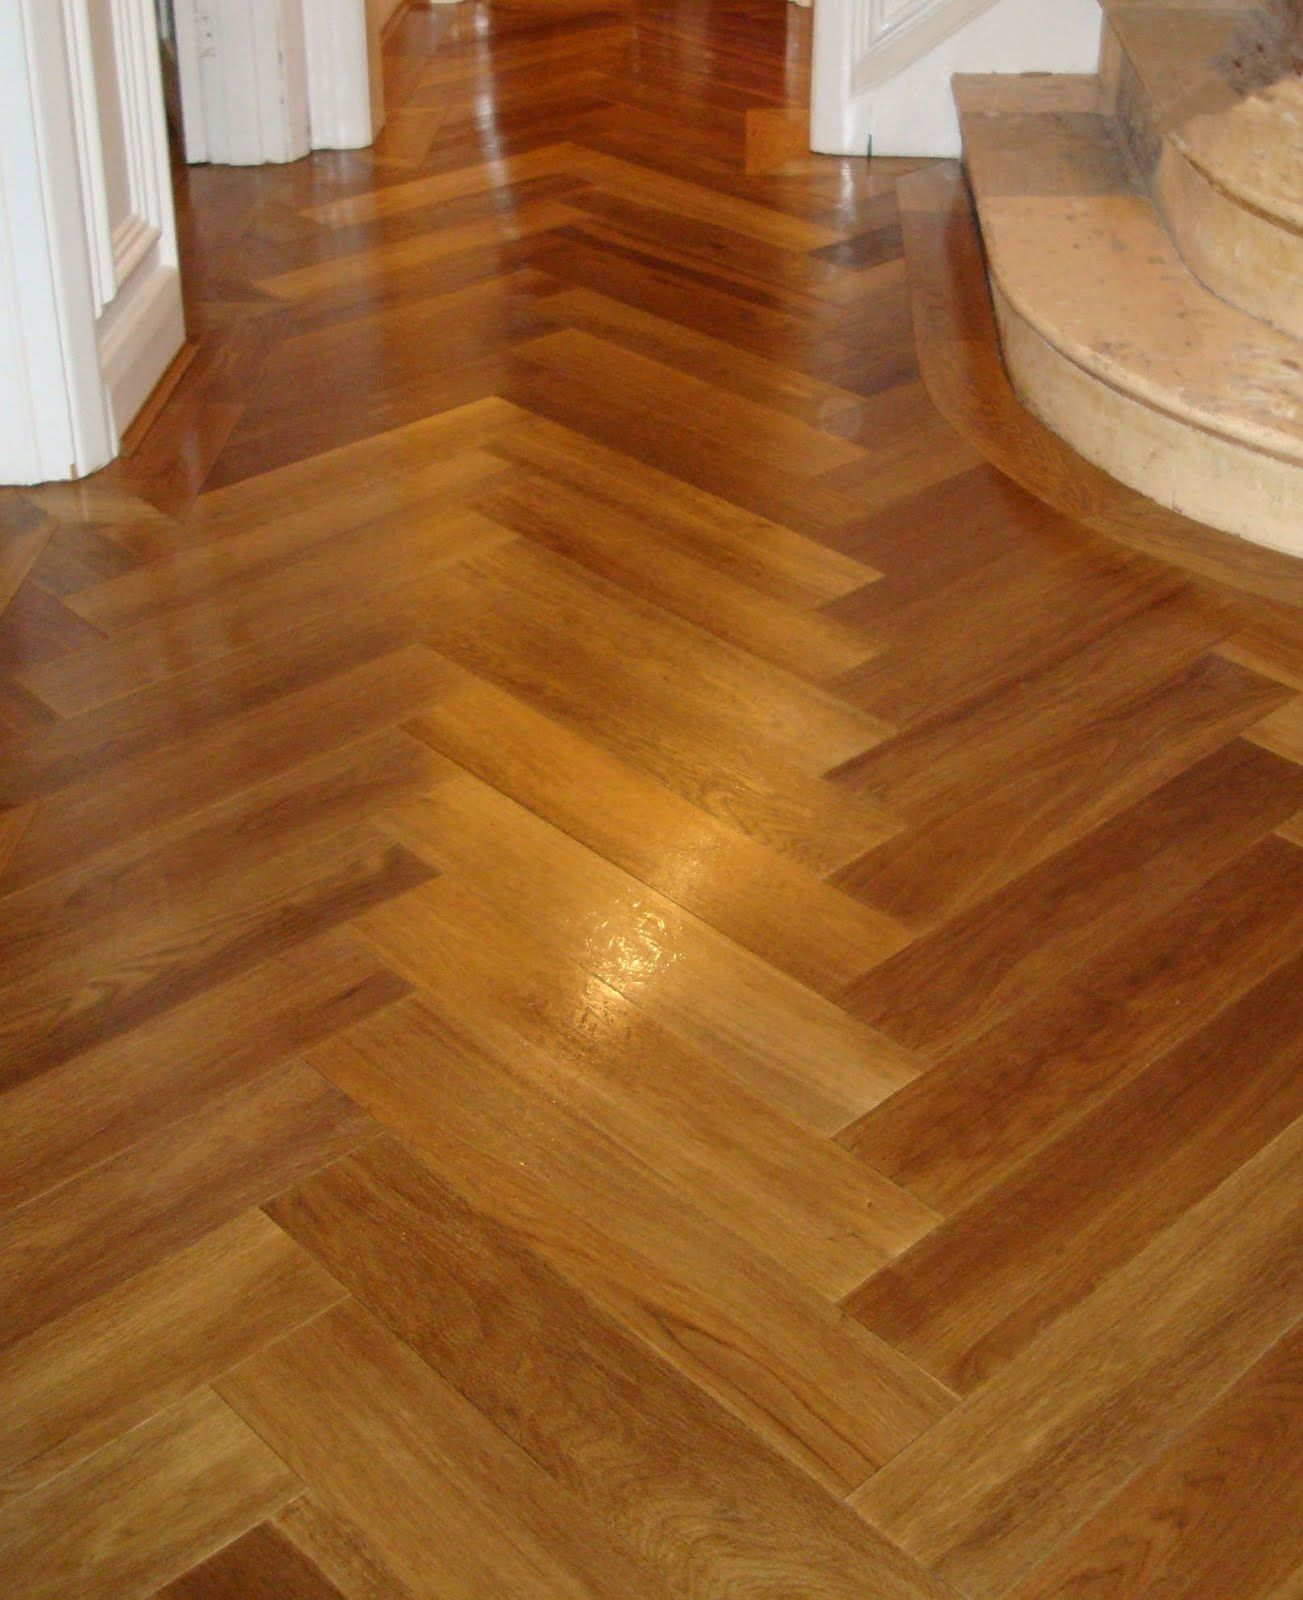 Wood flooring ideas wood floor wood floor design wood for Hardwood decking planks